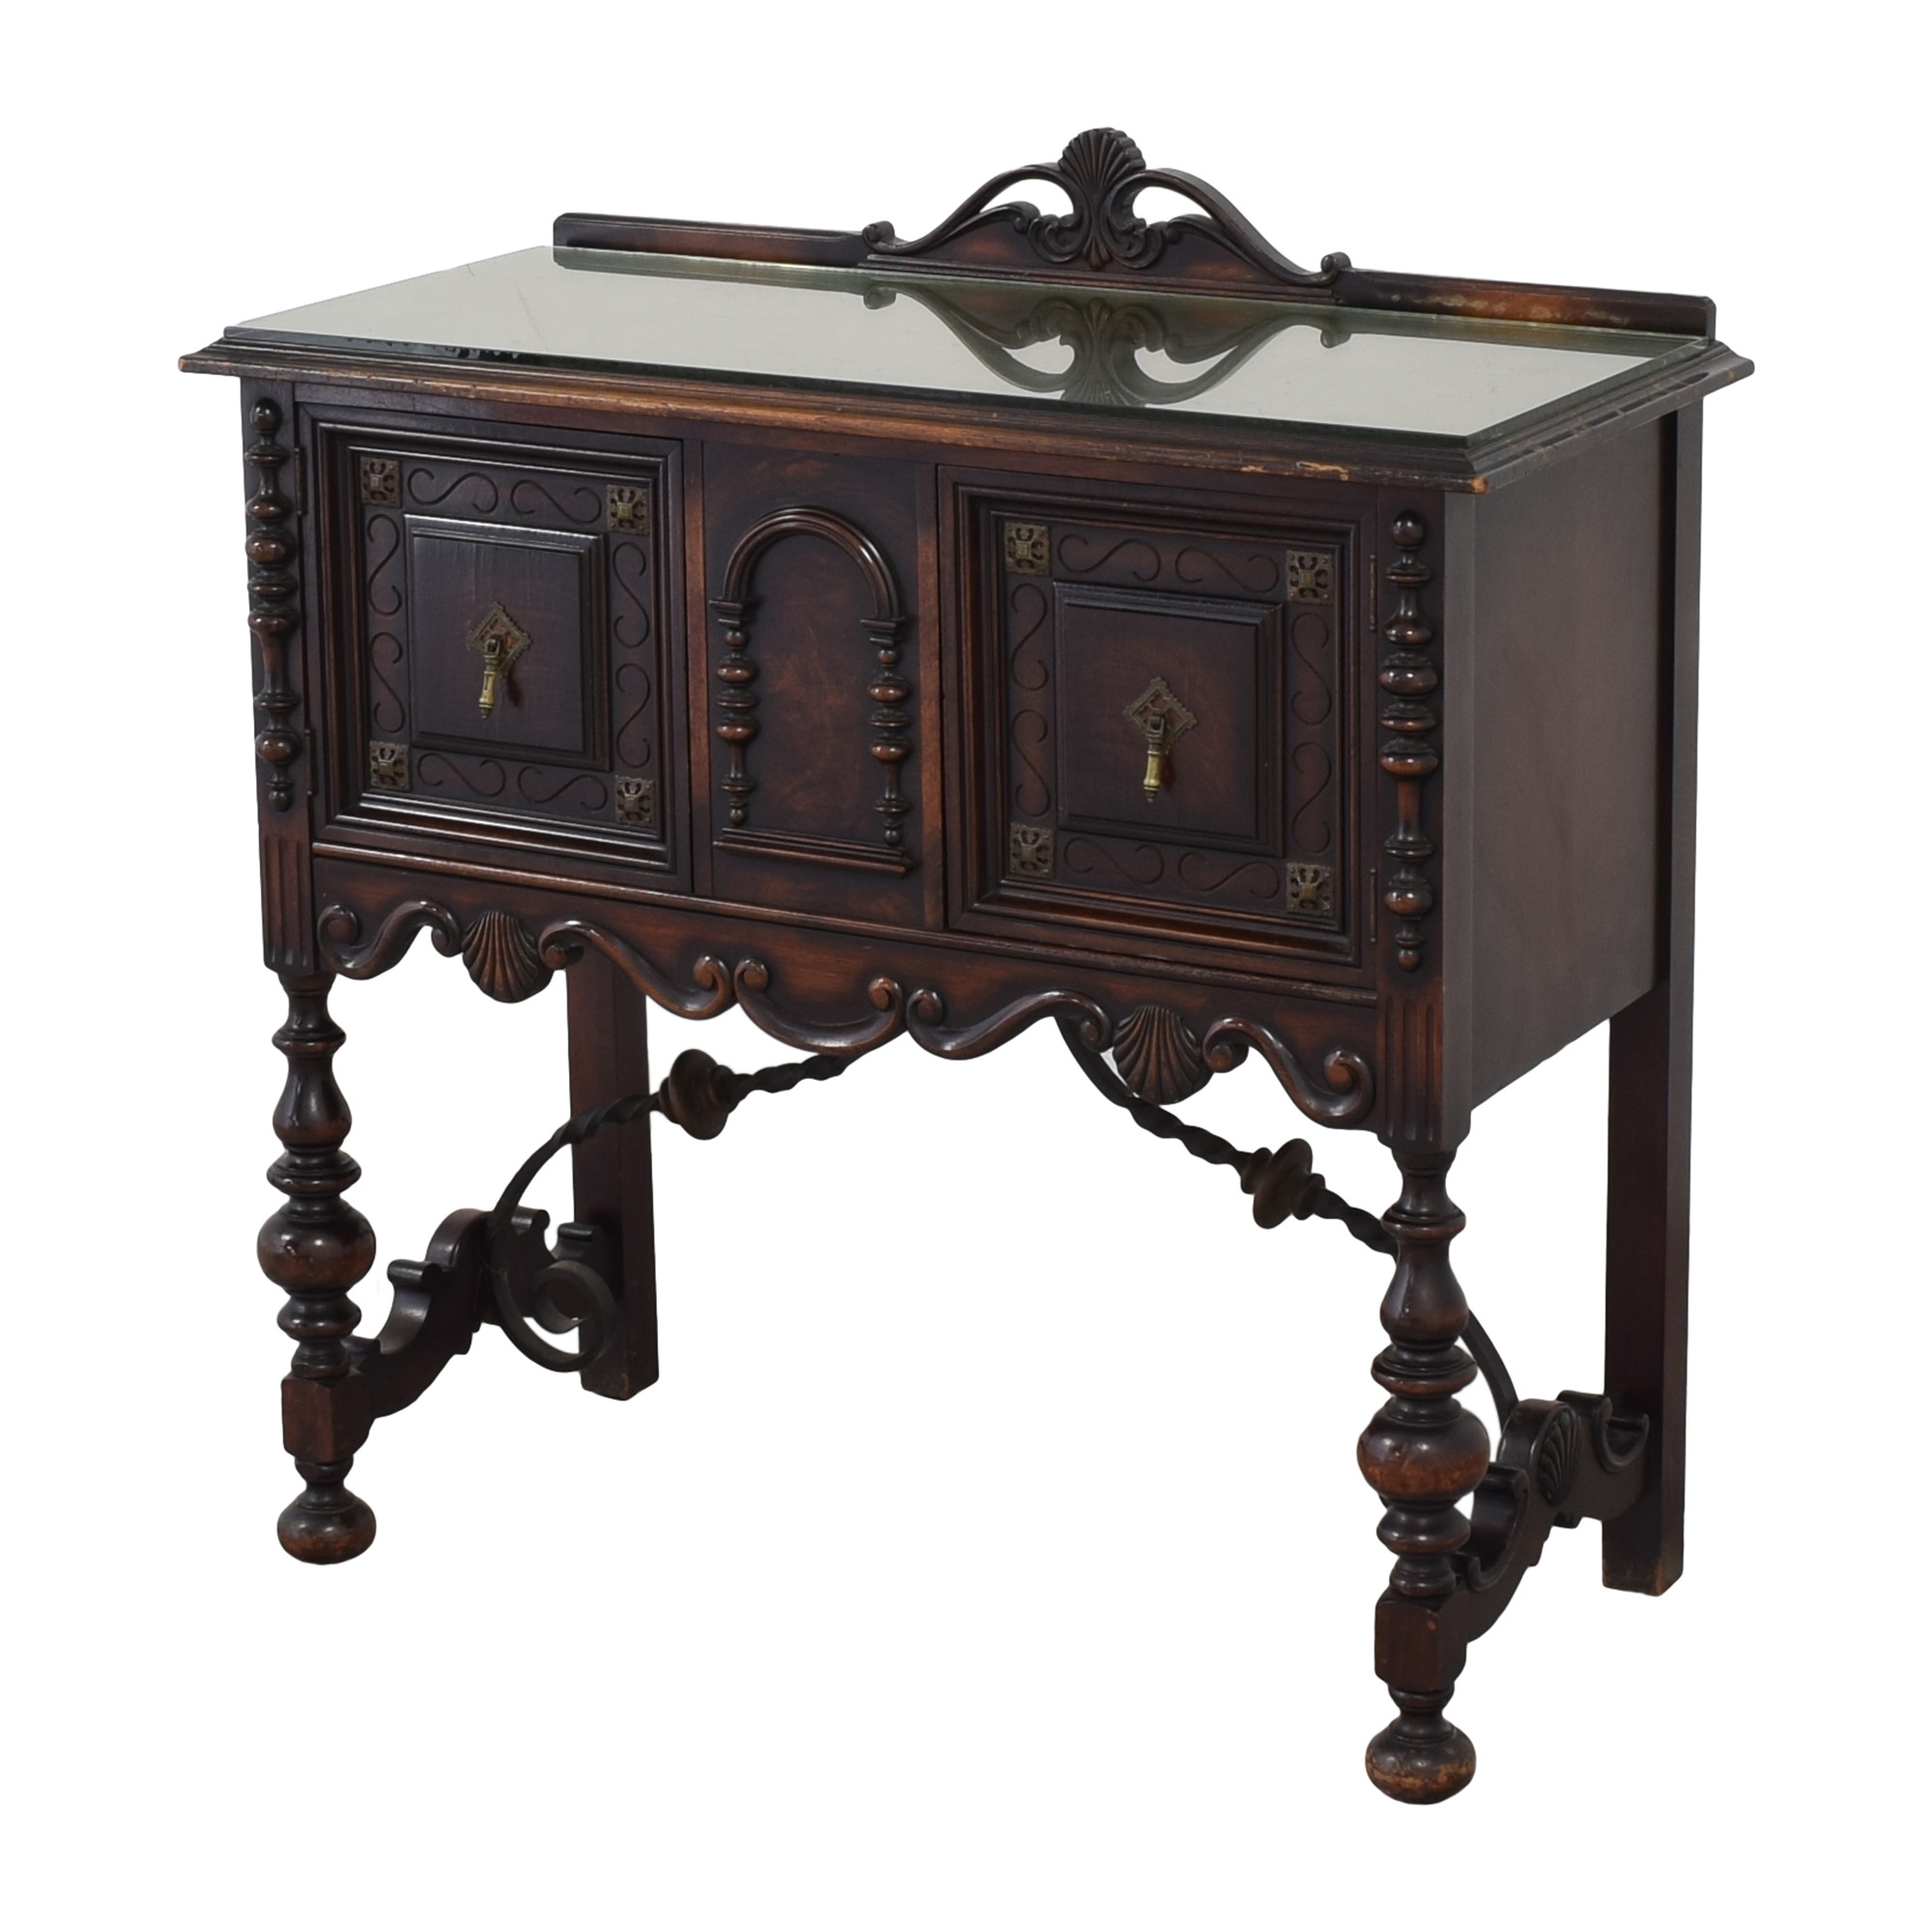 Vanleigh Furniture Vanleigh Furniture Sideboard discount